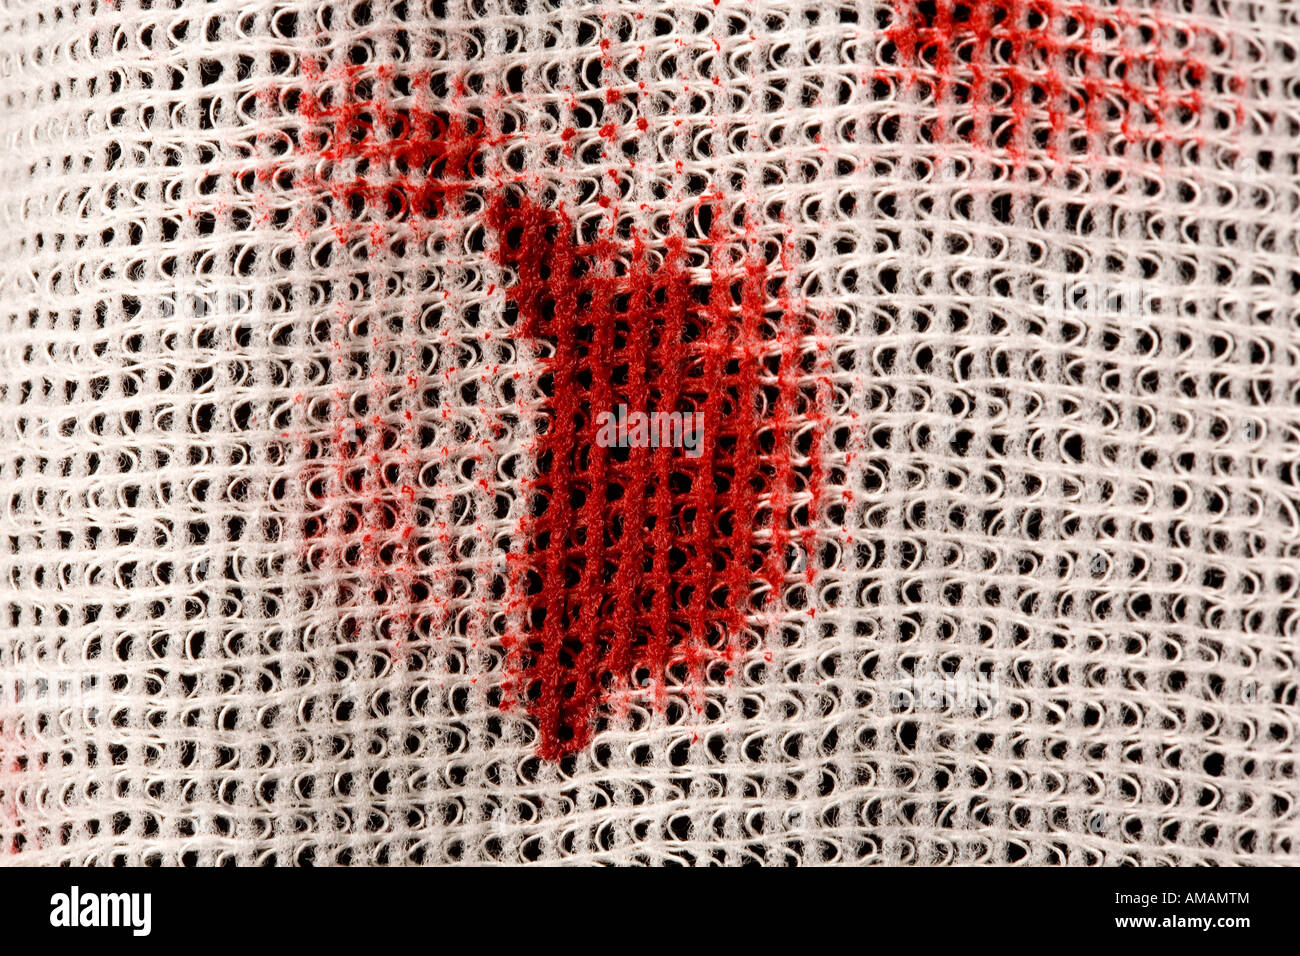 Blood stains on a bandage - Stock Image